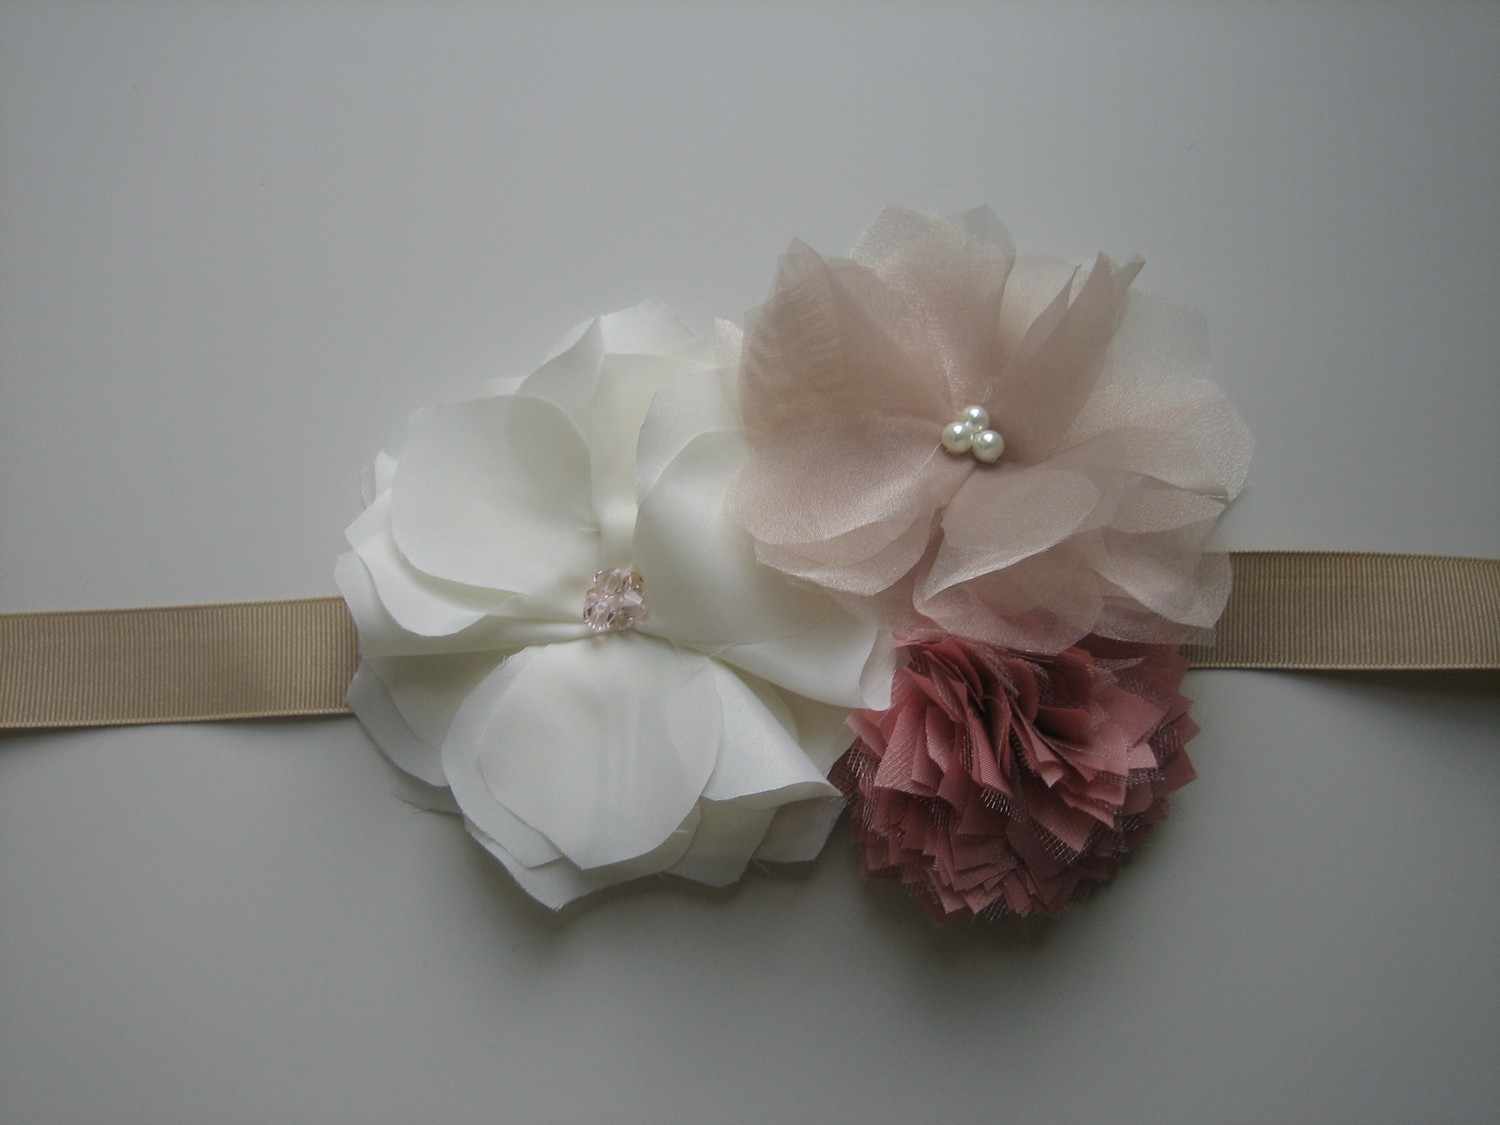 Beauty, Flowers & Decor, Bridesmaids, Bridesmaids Dresses, Wedding Dresses, Fashion, dress, Bride Bouquets, Bridesmaid Bouquets, Bride, Flowers, Flower, Girl, Wedding, Bridesmaid, Hair, Sash, Belt, Fabric, Fascinator, Handmade, Flower Wedding Dresses